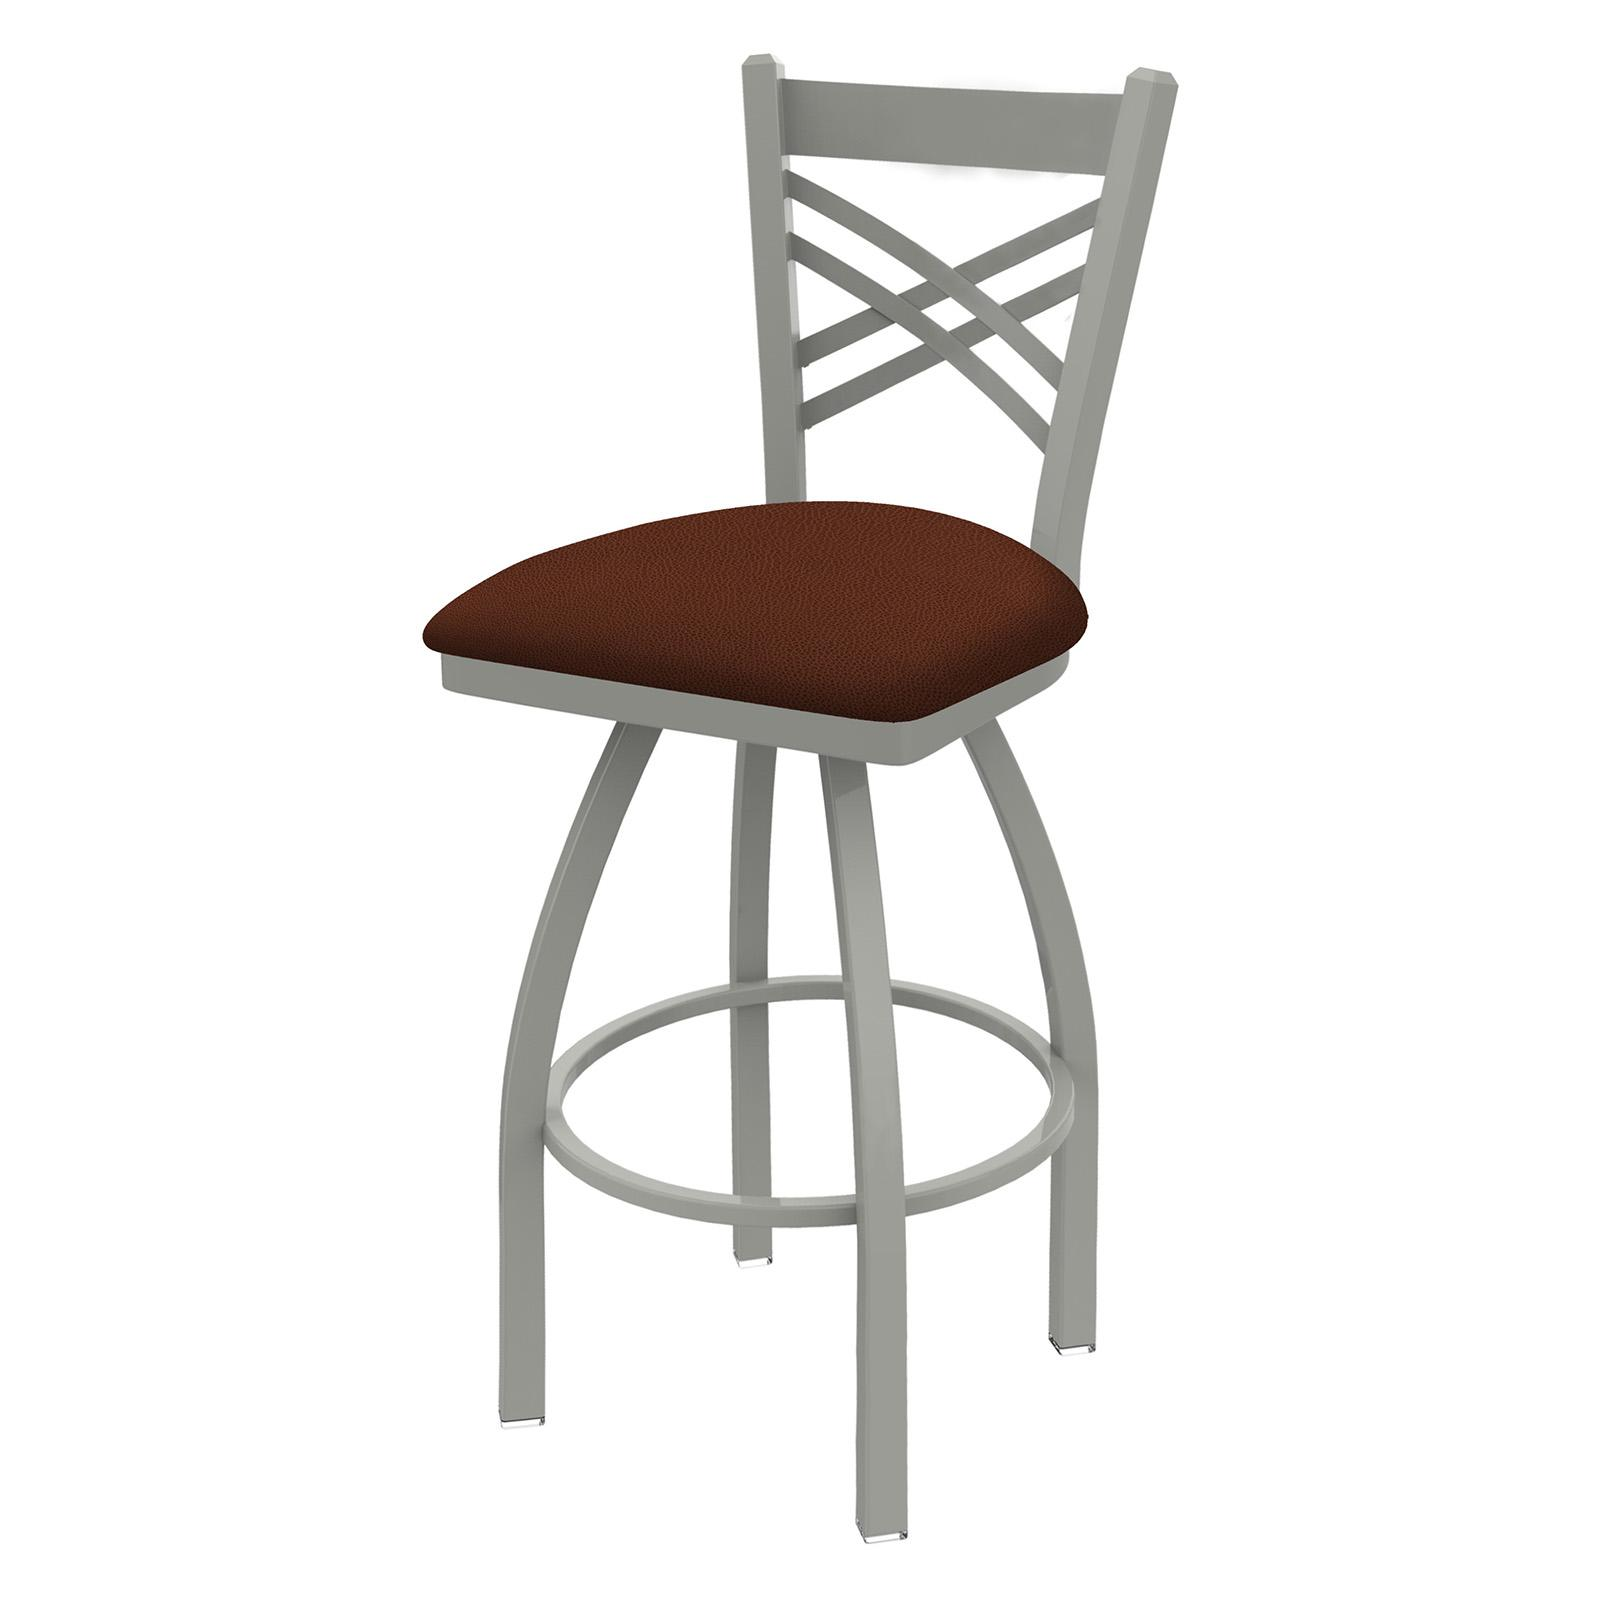 Holland Bar Stool Catalina 25 in. Metal Swivel Counter Stool with Faux Leather Seat Rein Adobe - 82025ANREIADO